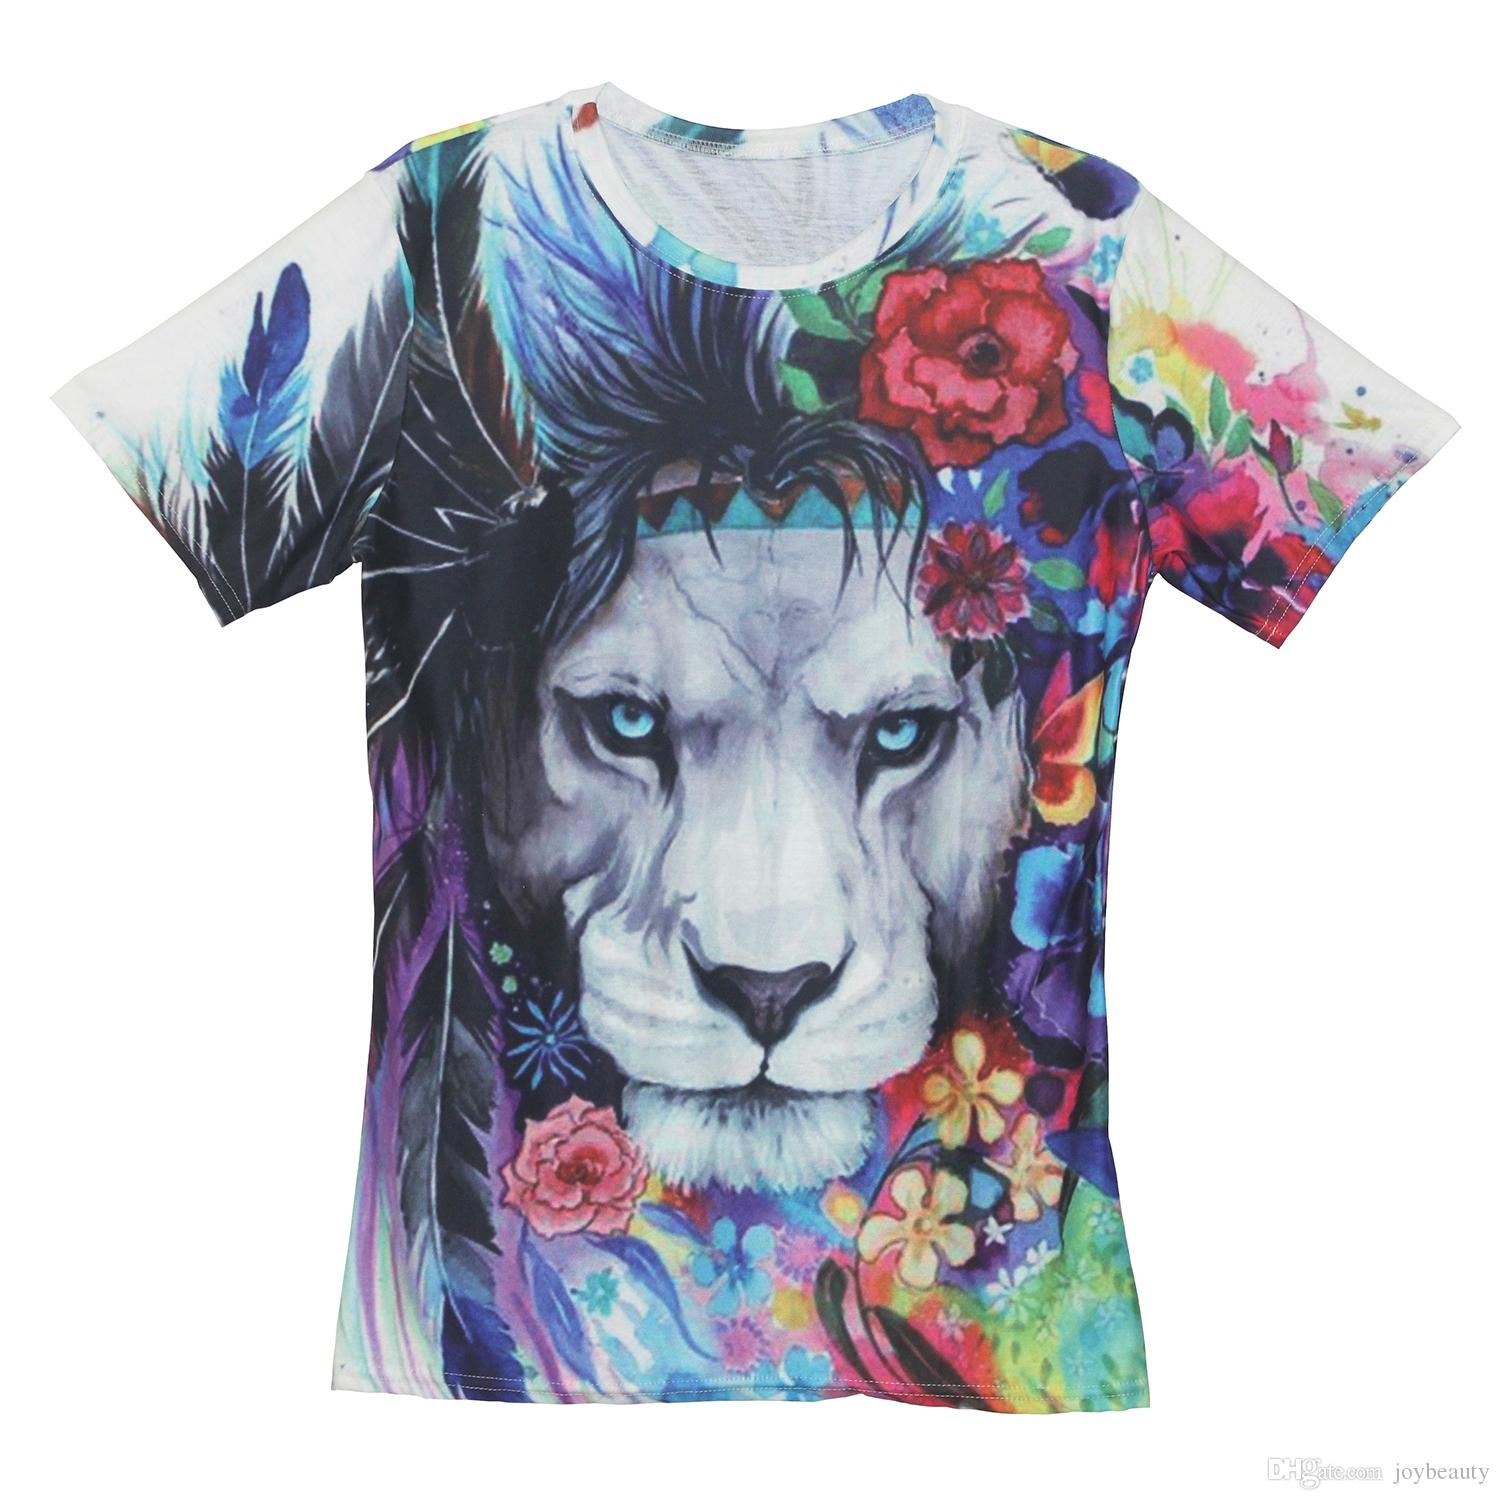 88d9a1627bff Men T Shirt Lion Feather Flower 3D Full Print Man Casual Tops Unisex Short  Sleeves Digital Graphic Tee Shirt Tees T Shirts Blouse RLT 2402 Customised T  ...